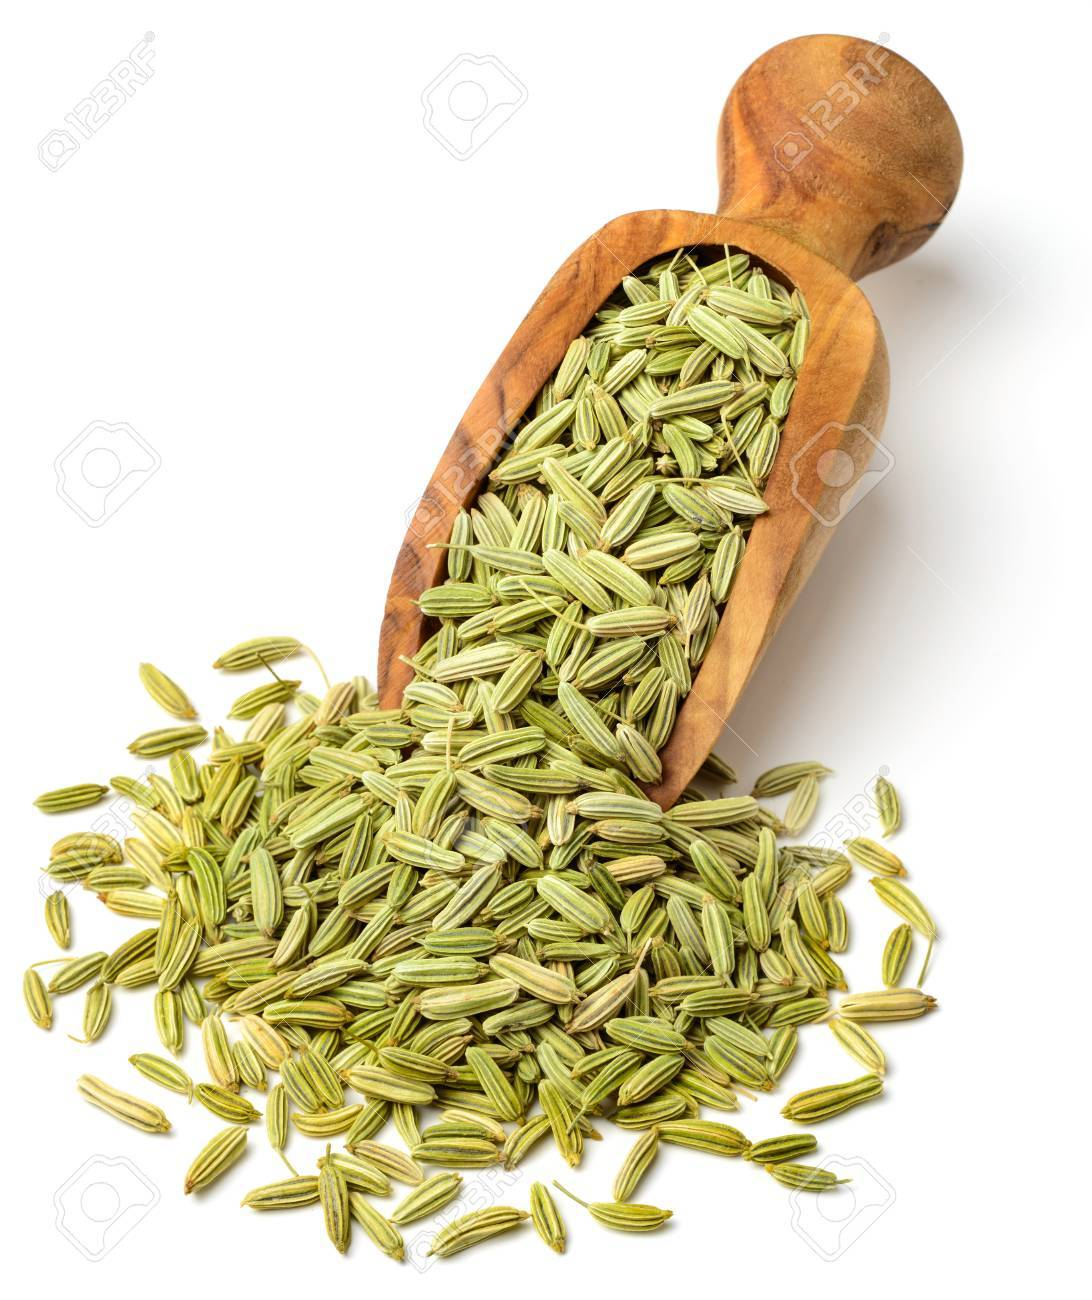 FENNEL SPICE